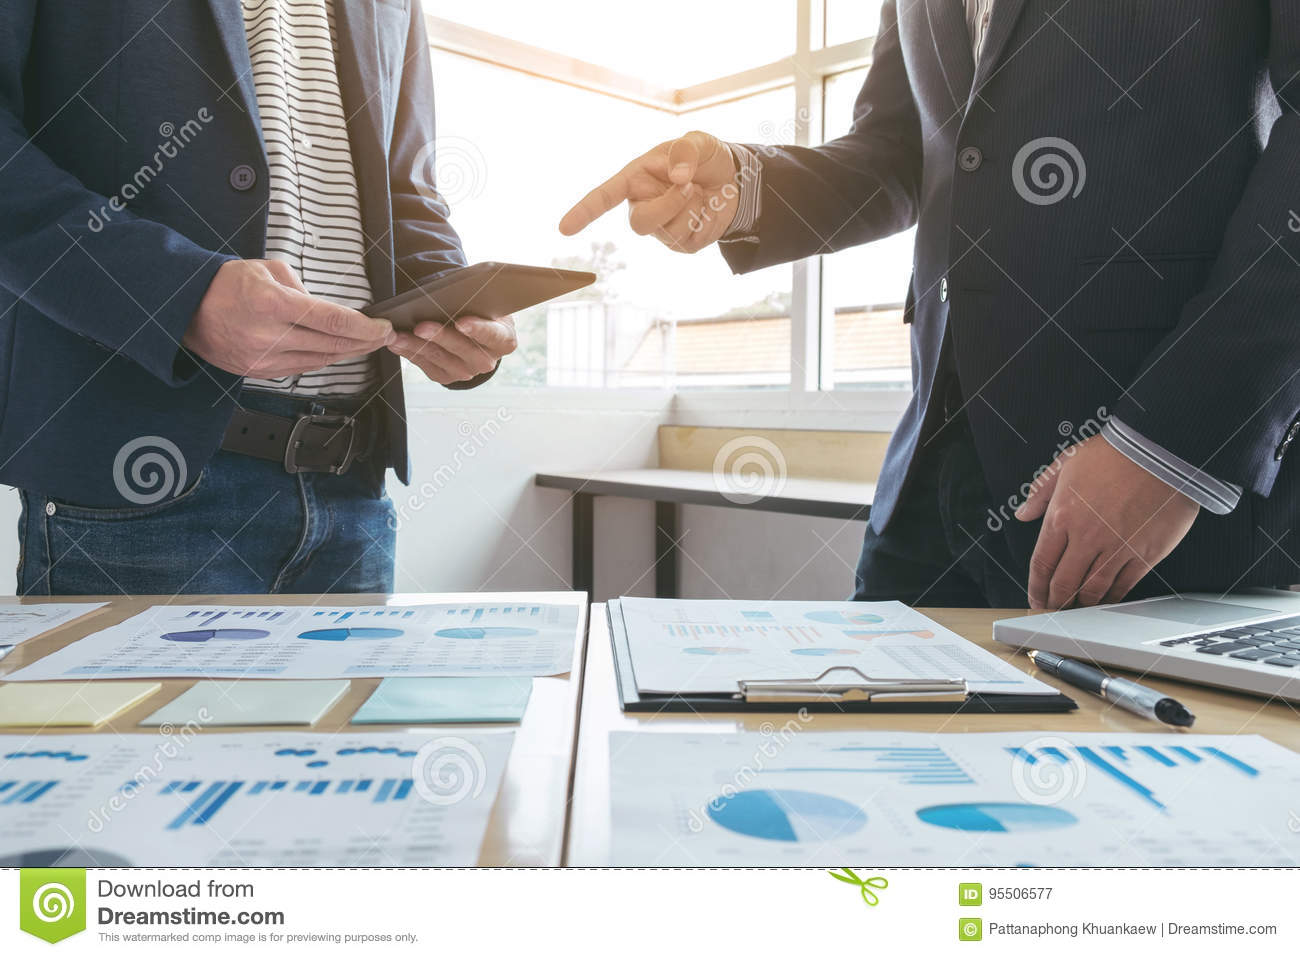 Business team meeting present. secretary presentation new idea and making report to professional investor with new finance project